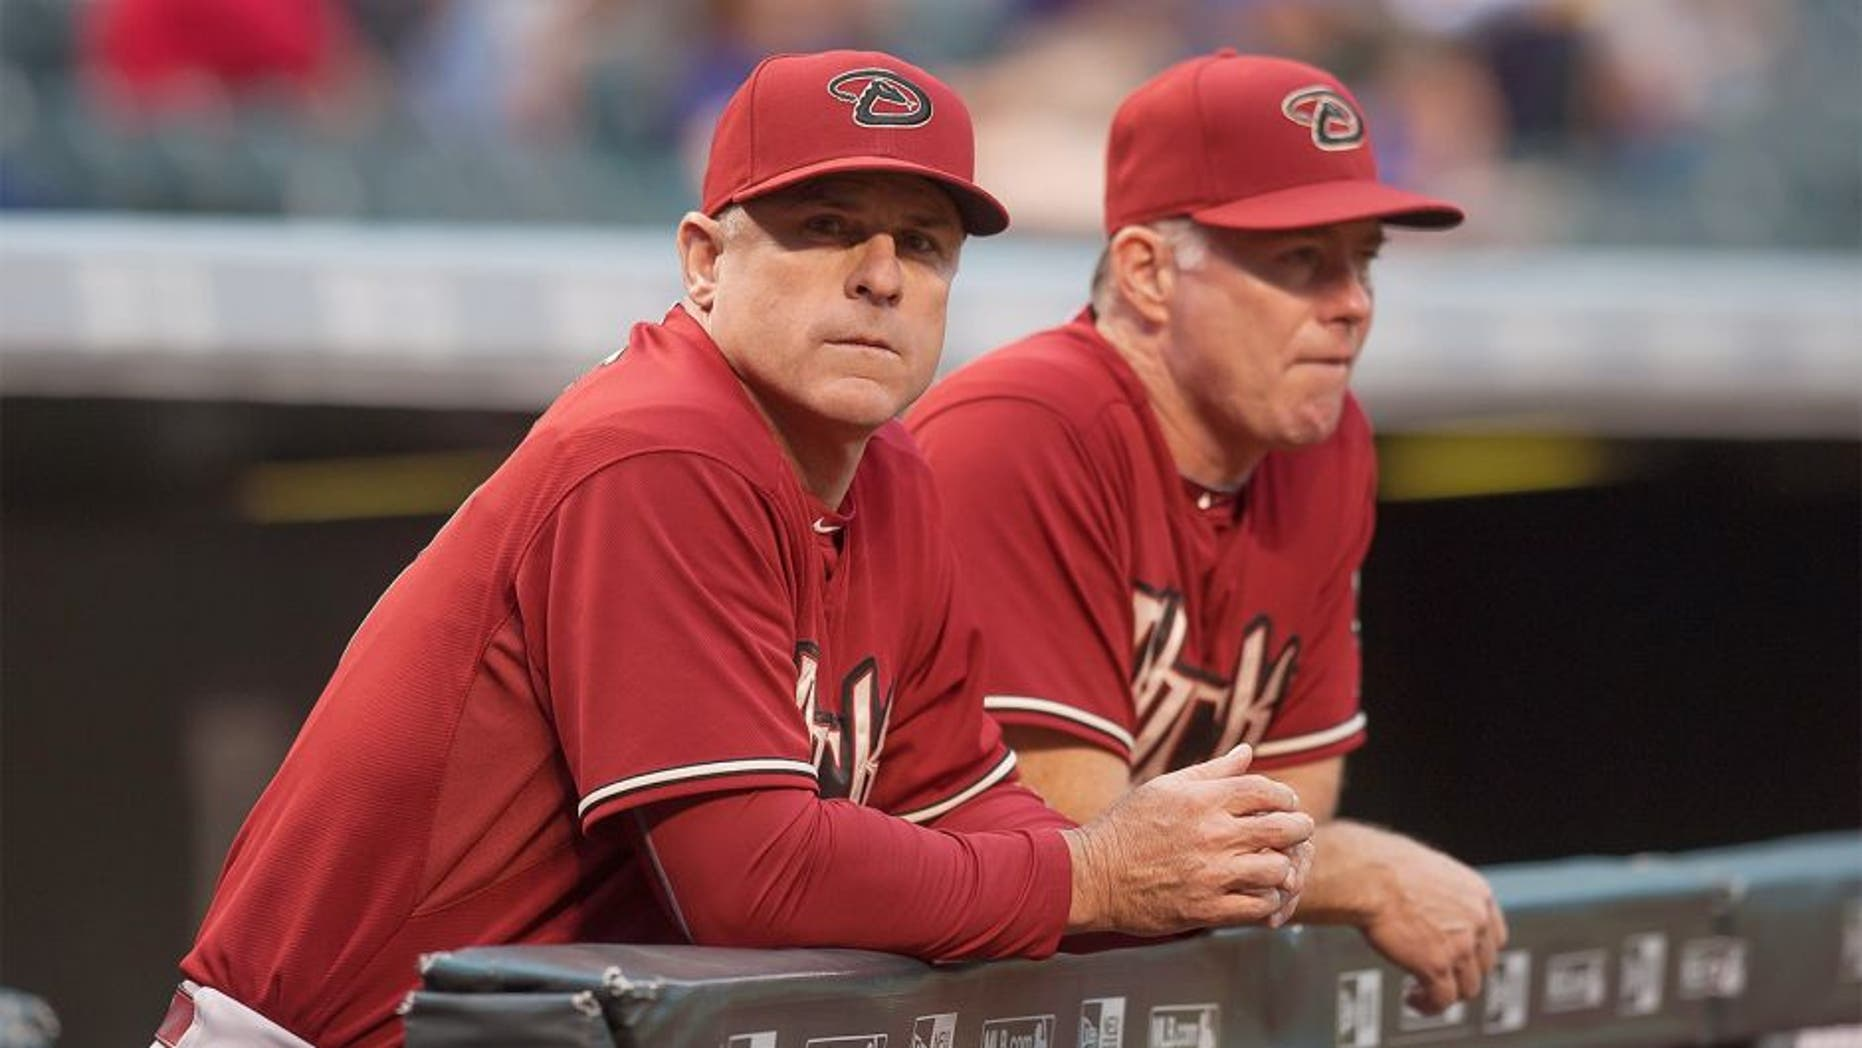 DENVER, CO - JUNE 24: Chip Hale #3 of the Arizona Diamondbacks looks out from the dugout in the first inning of a game against the Colorado Rockies at Coors Field on June 24, 2015 in Denver, Colorado. (Photo by Dustin Bradford/Getty Images)